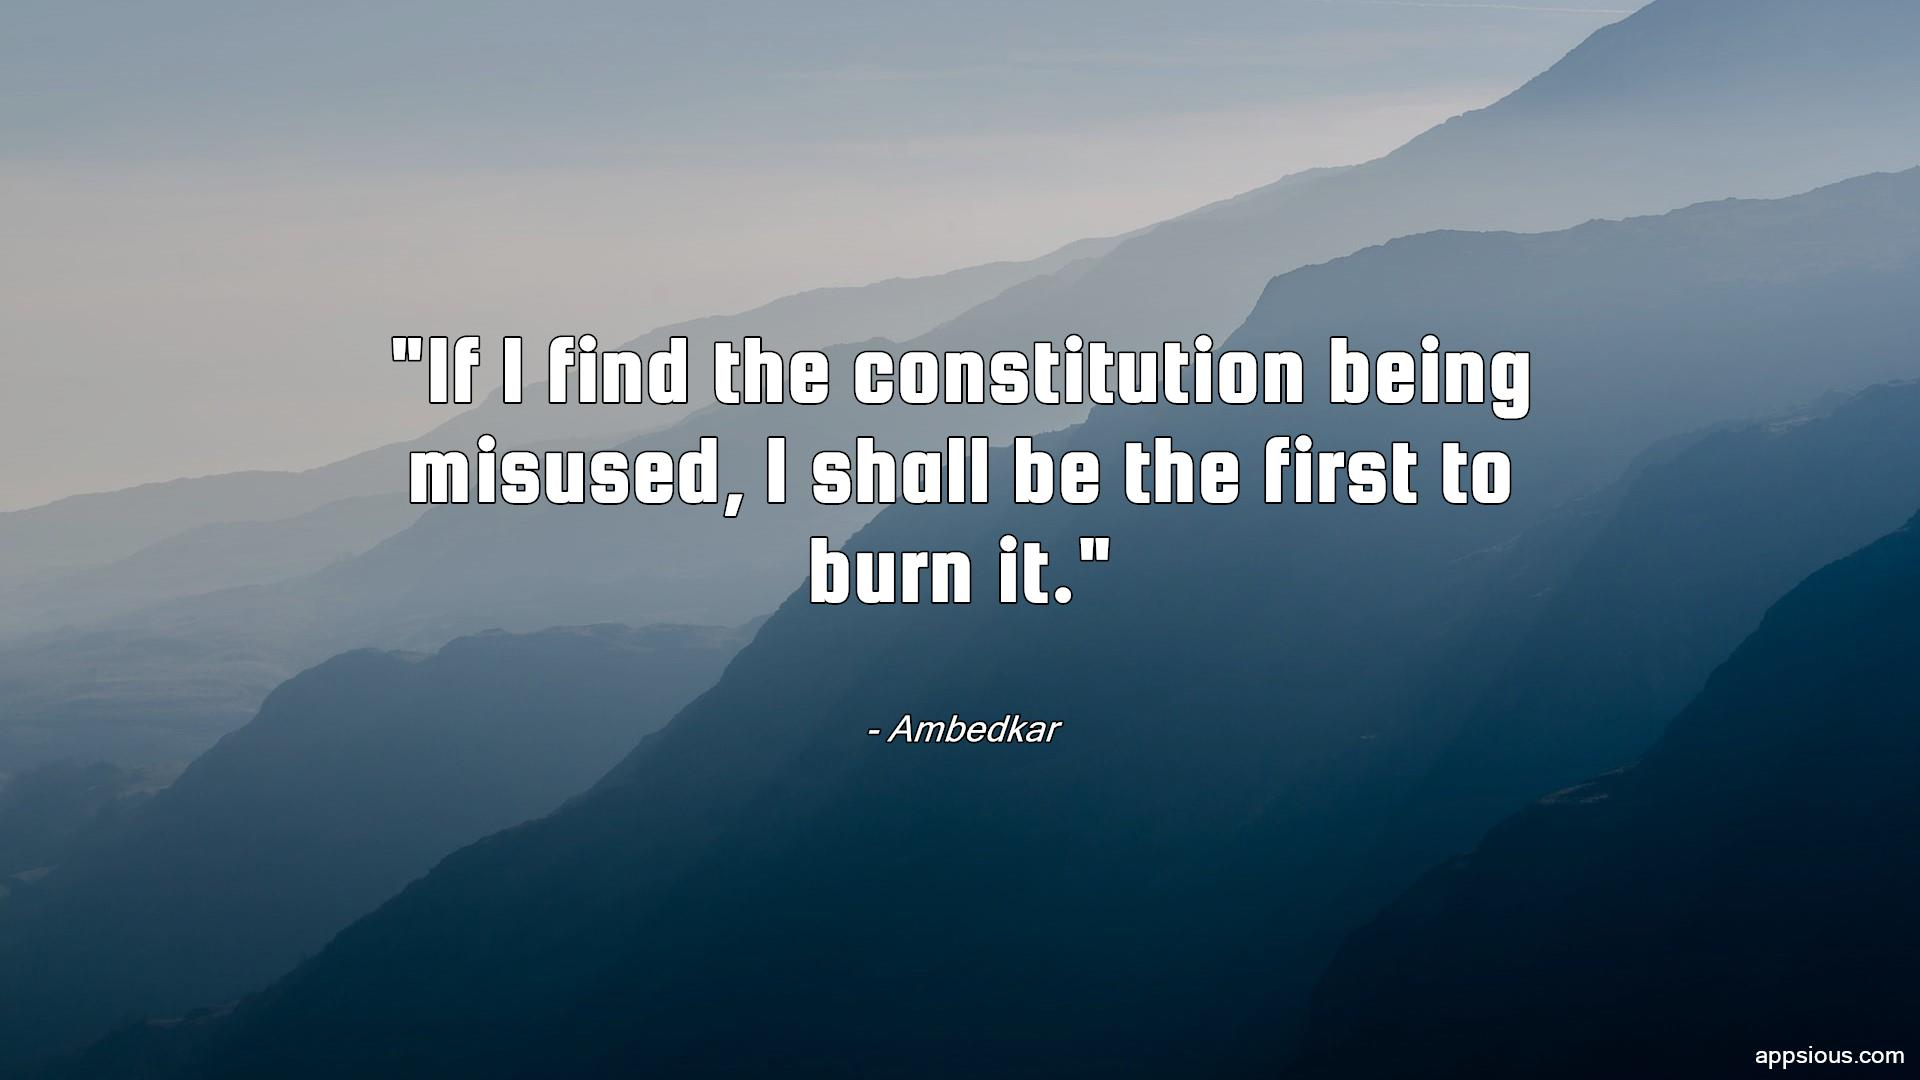 If I find the constitution being misused, I shall be the first to burn it.